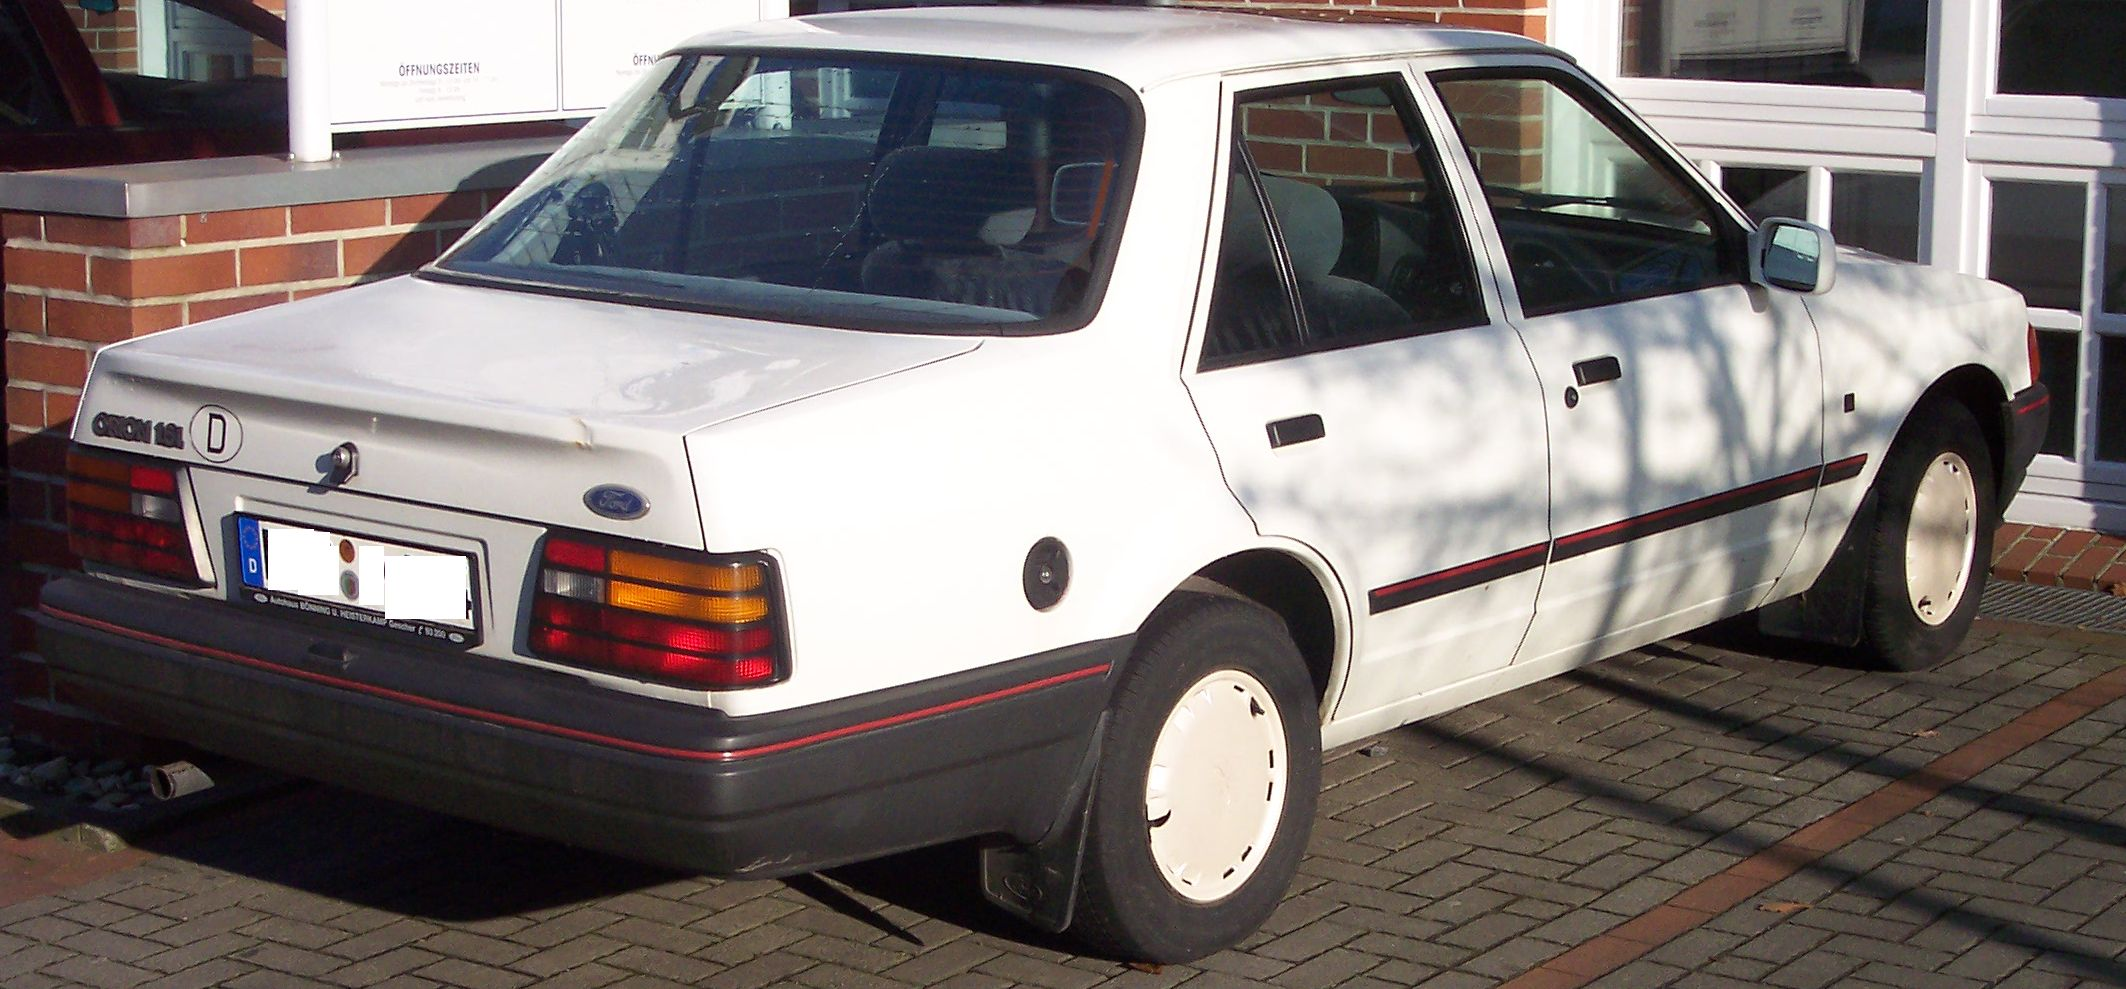 Ford Orion 1984 photo - 5